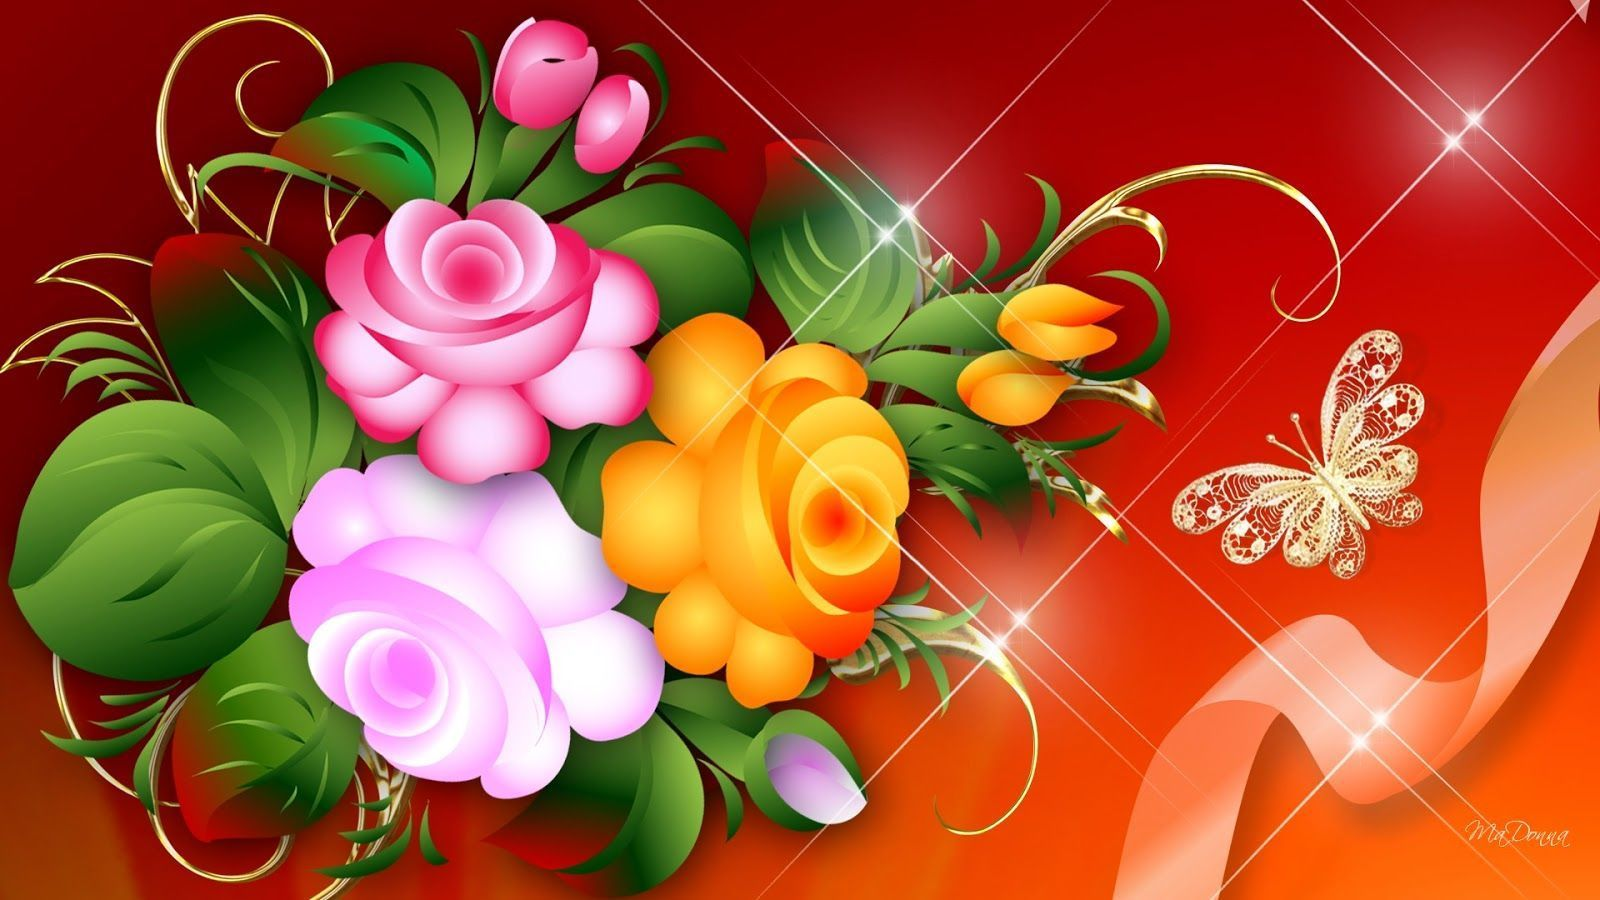 Beautiful flowers wallpaper free download - SF Wallpaper